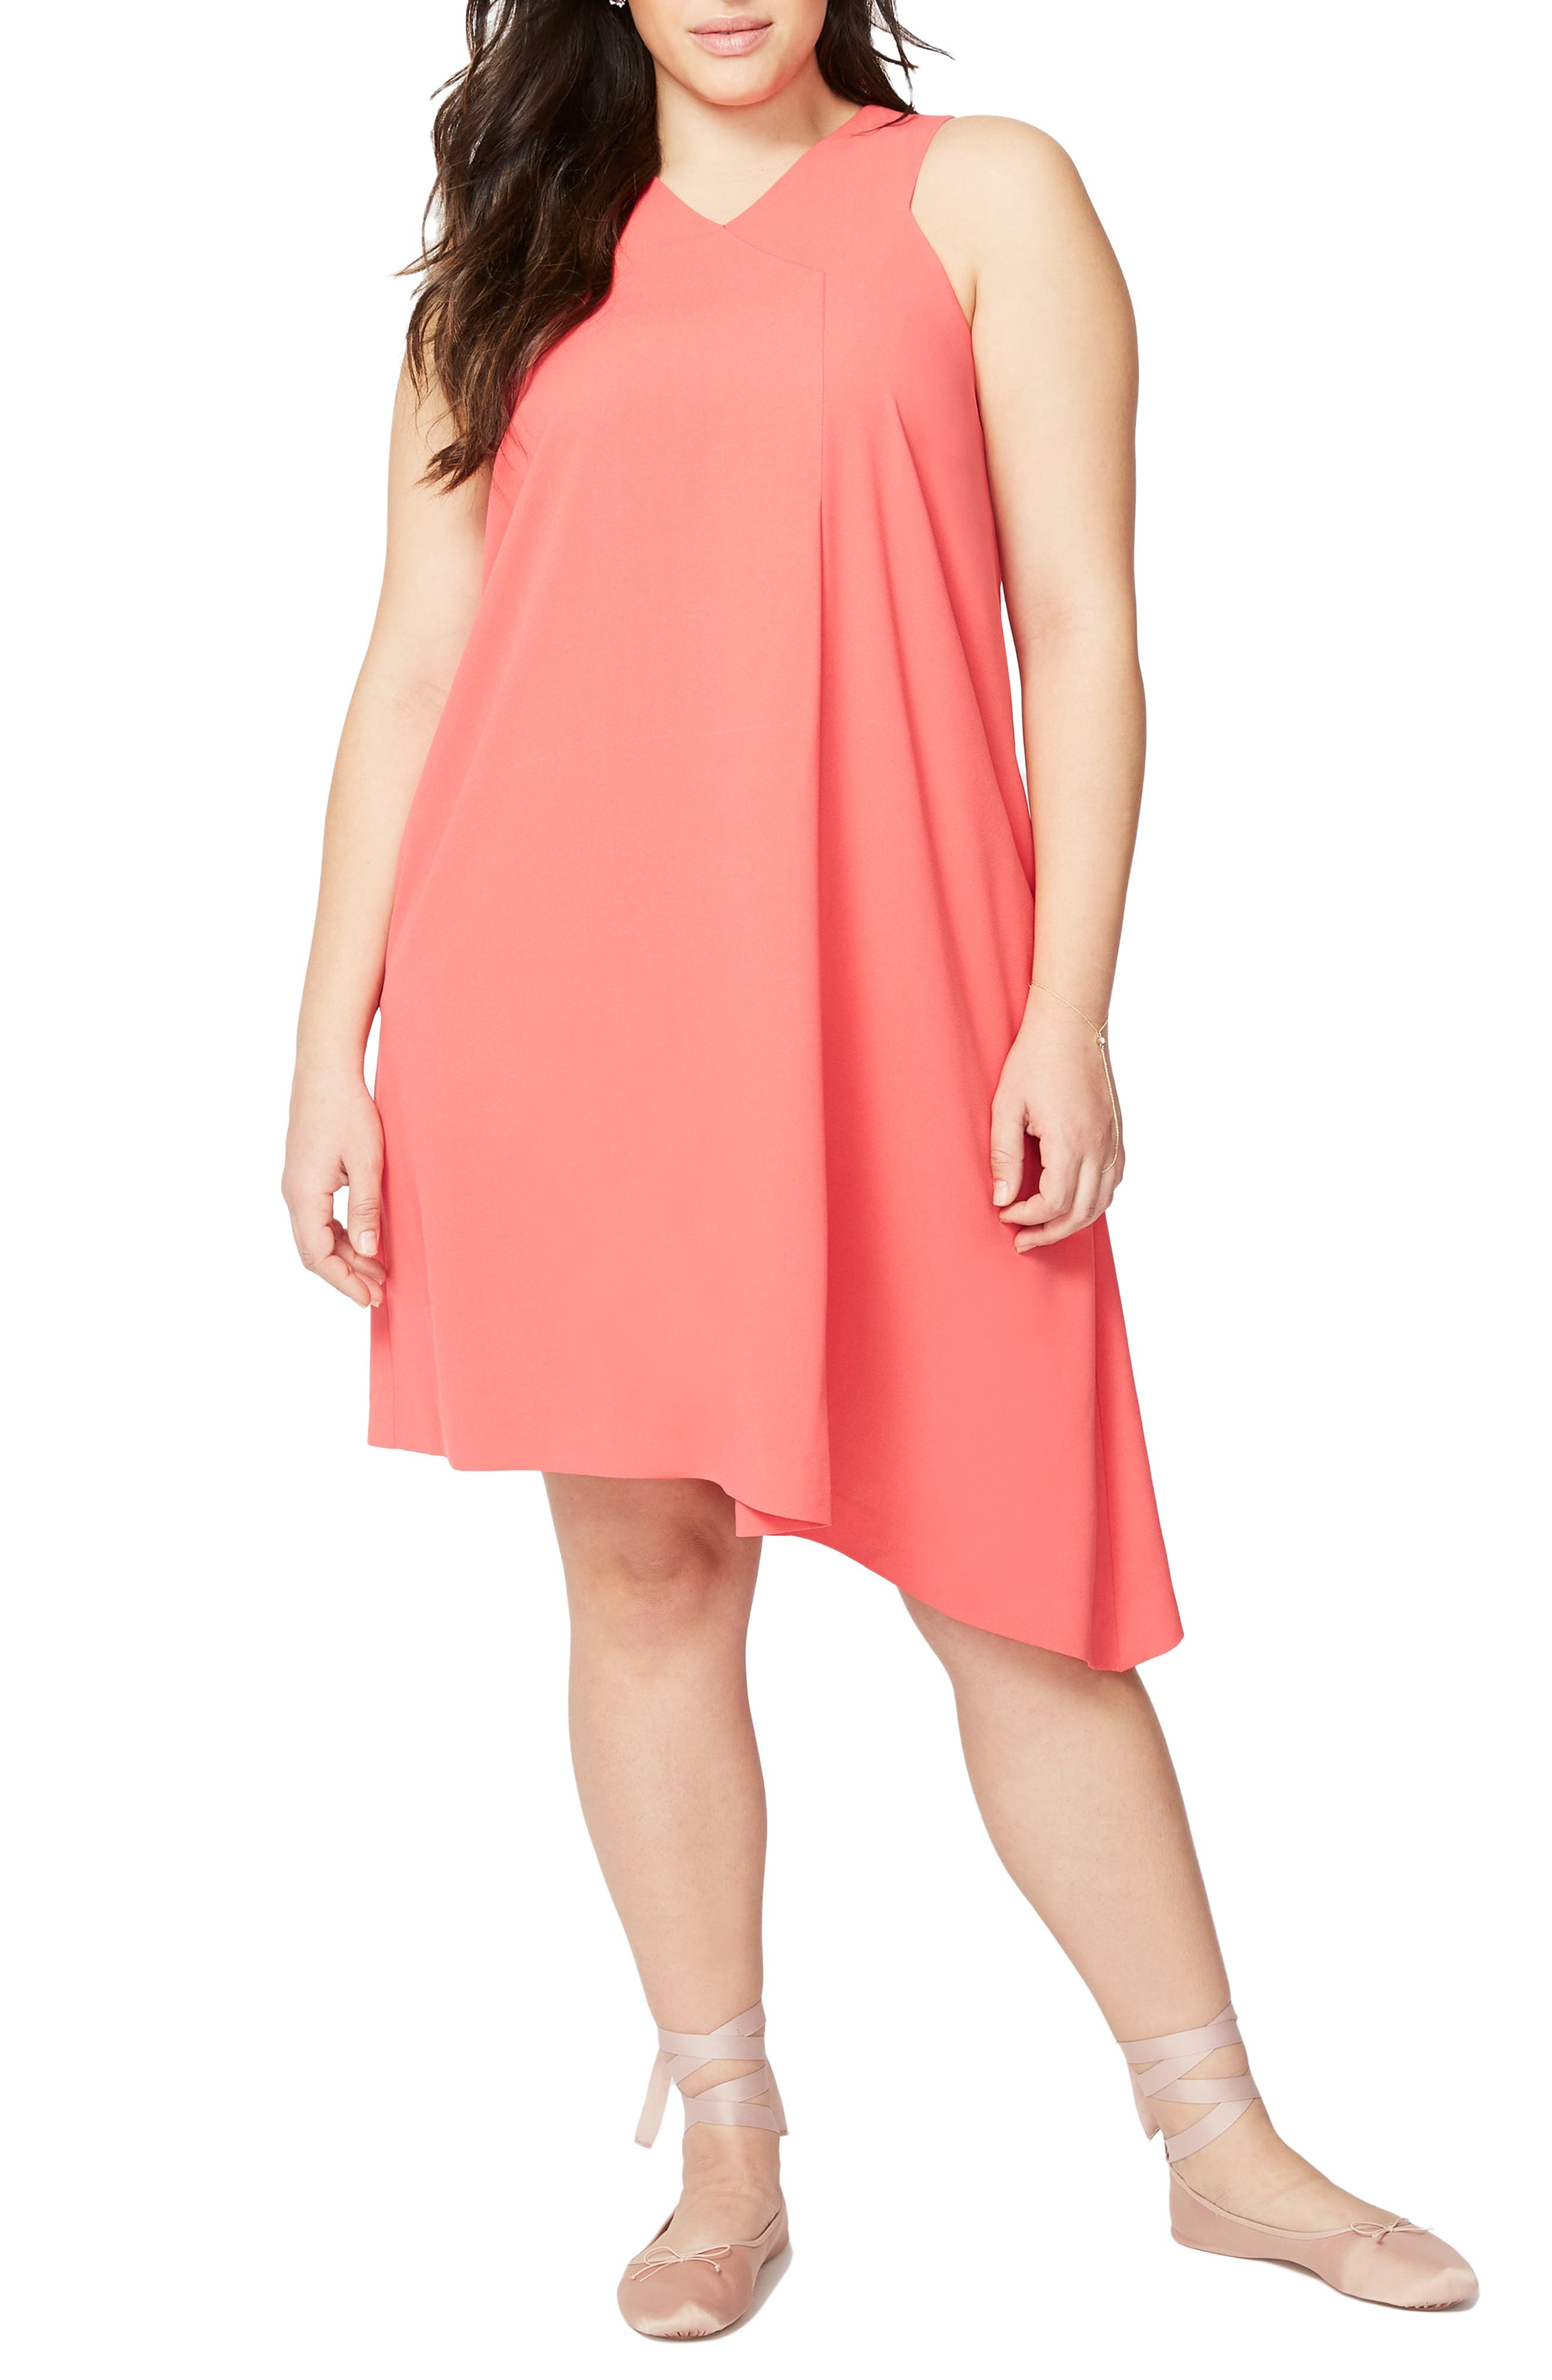 Alternate Image 1 Selected - RACHEL Rachel Roy Pleat Front Shift Dress (Plus Size)